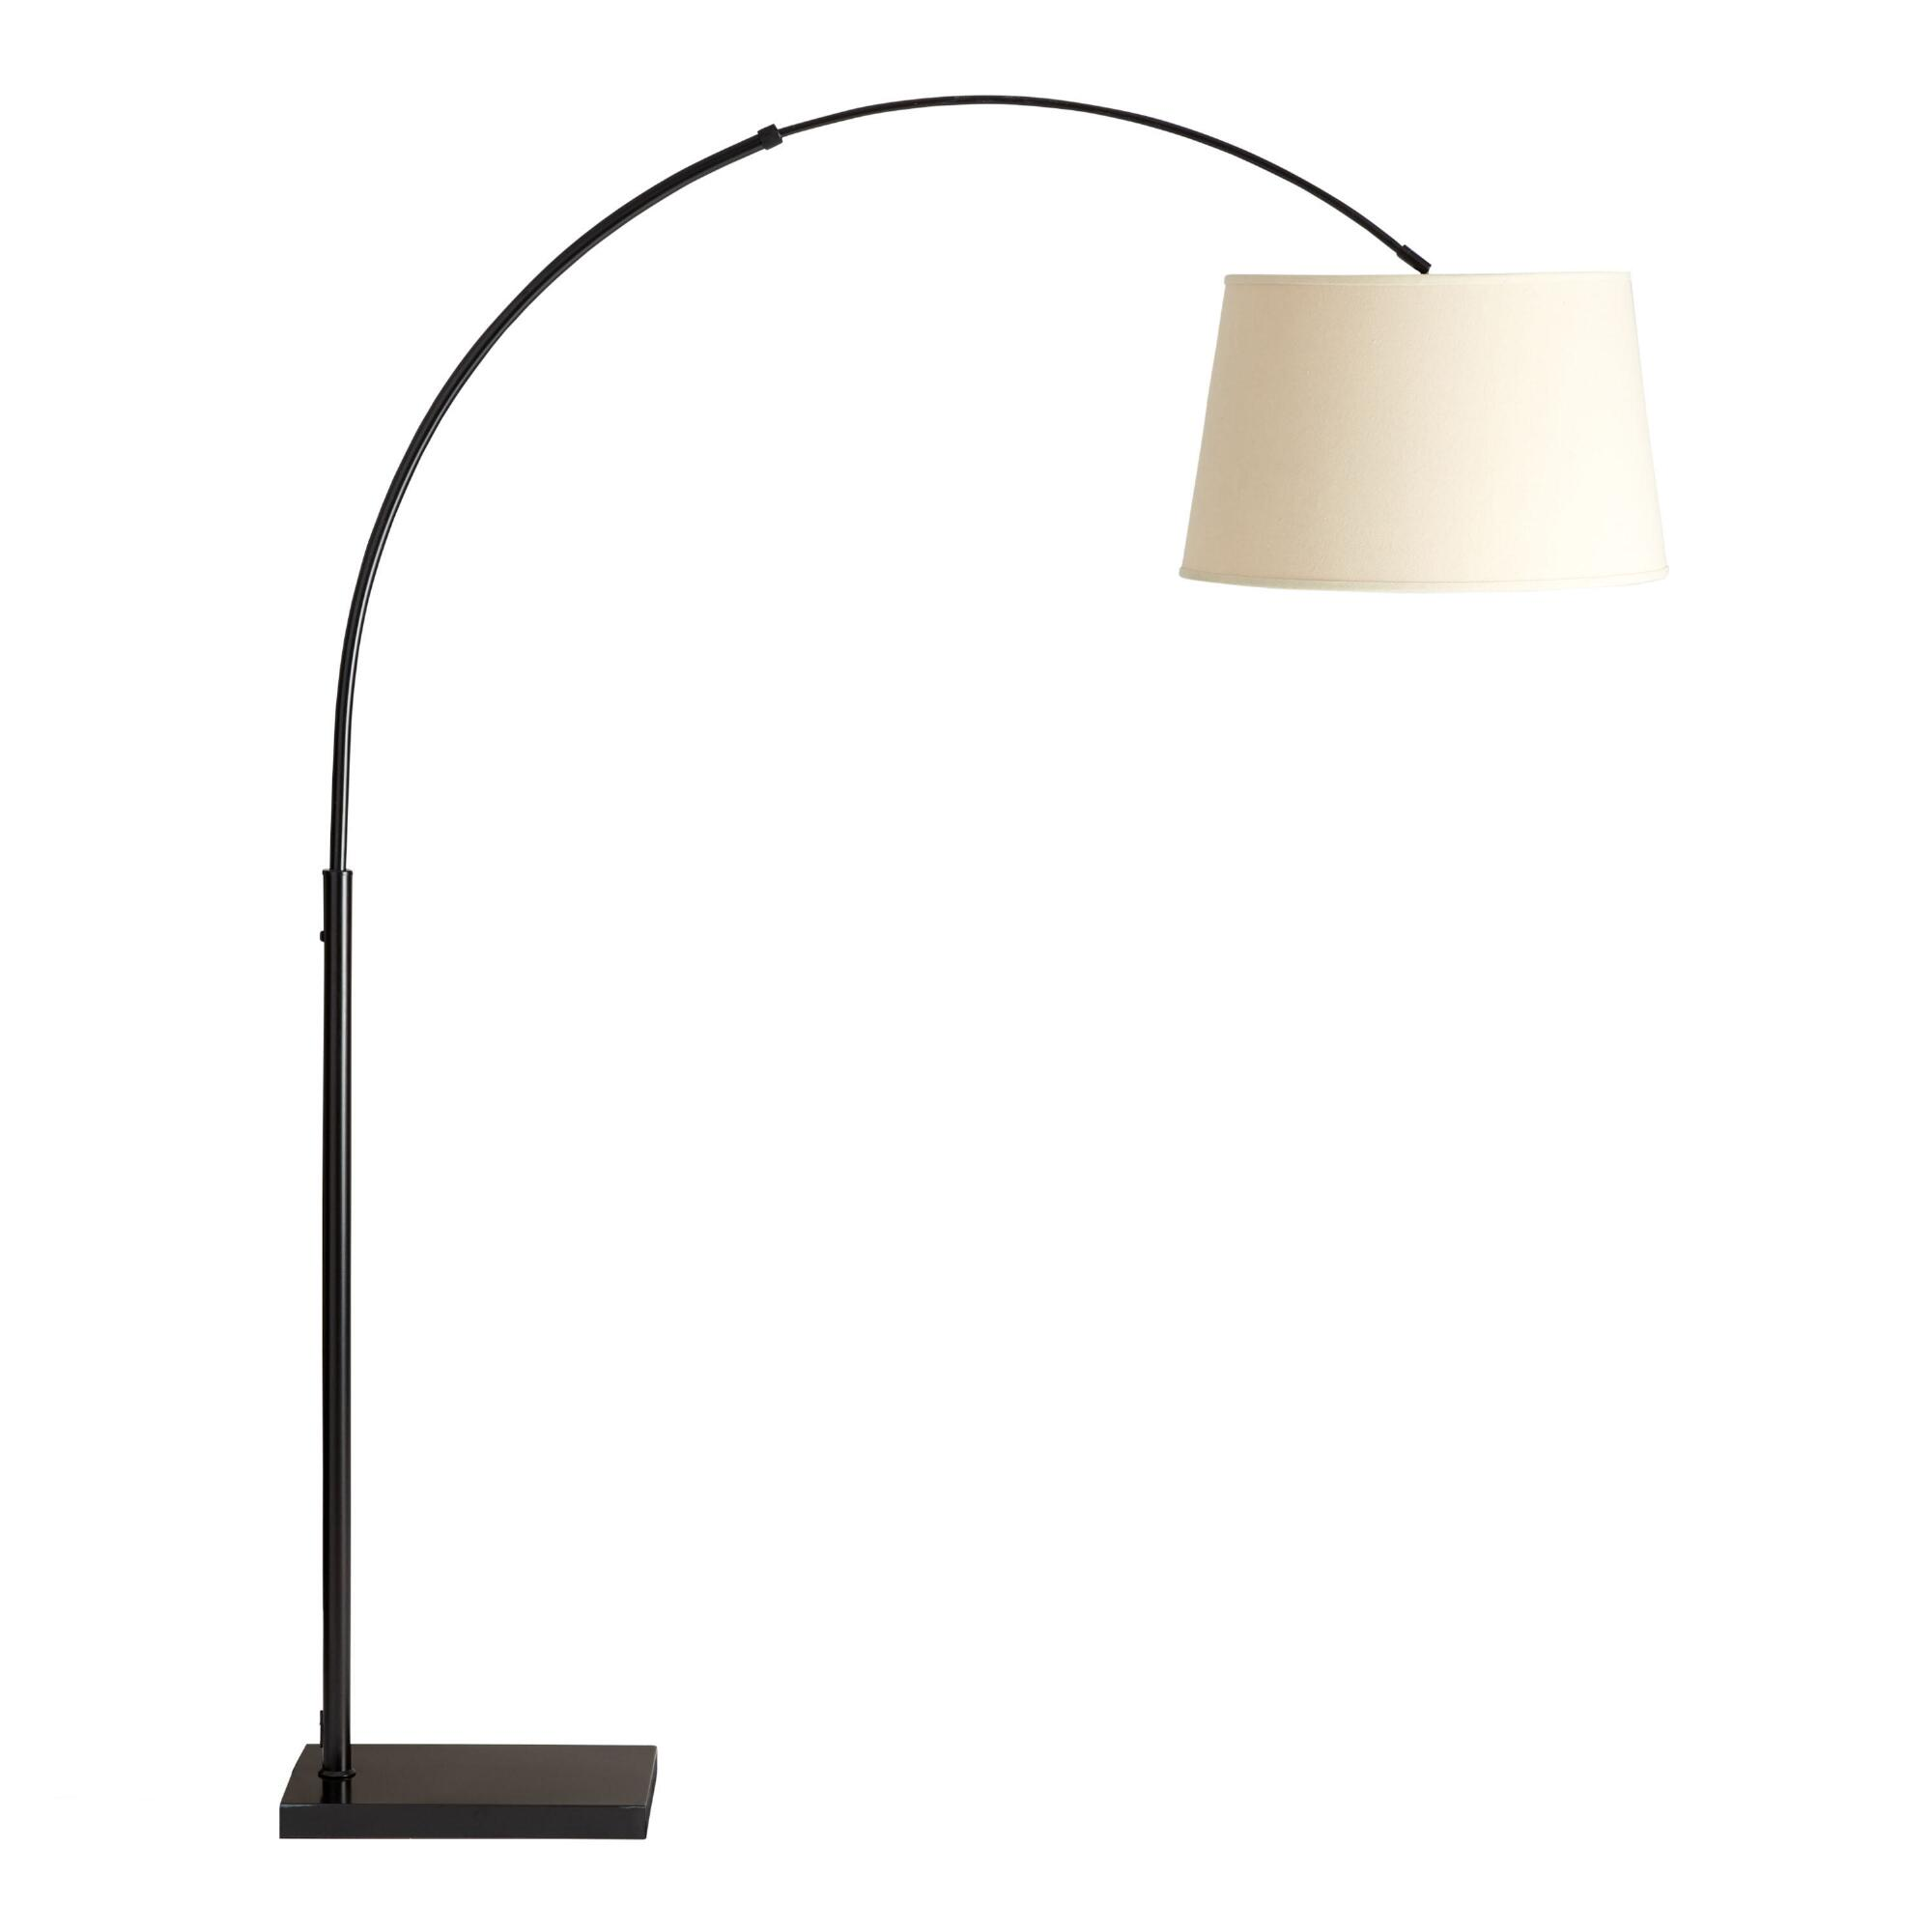 Arc floor lamp dining table - Arc Floor Lamp Dining Table 7